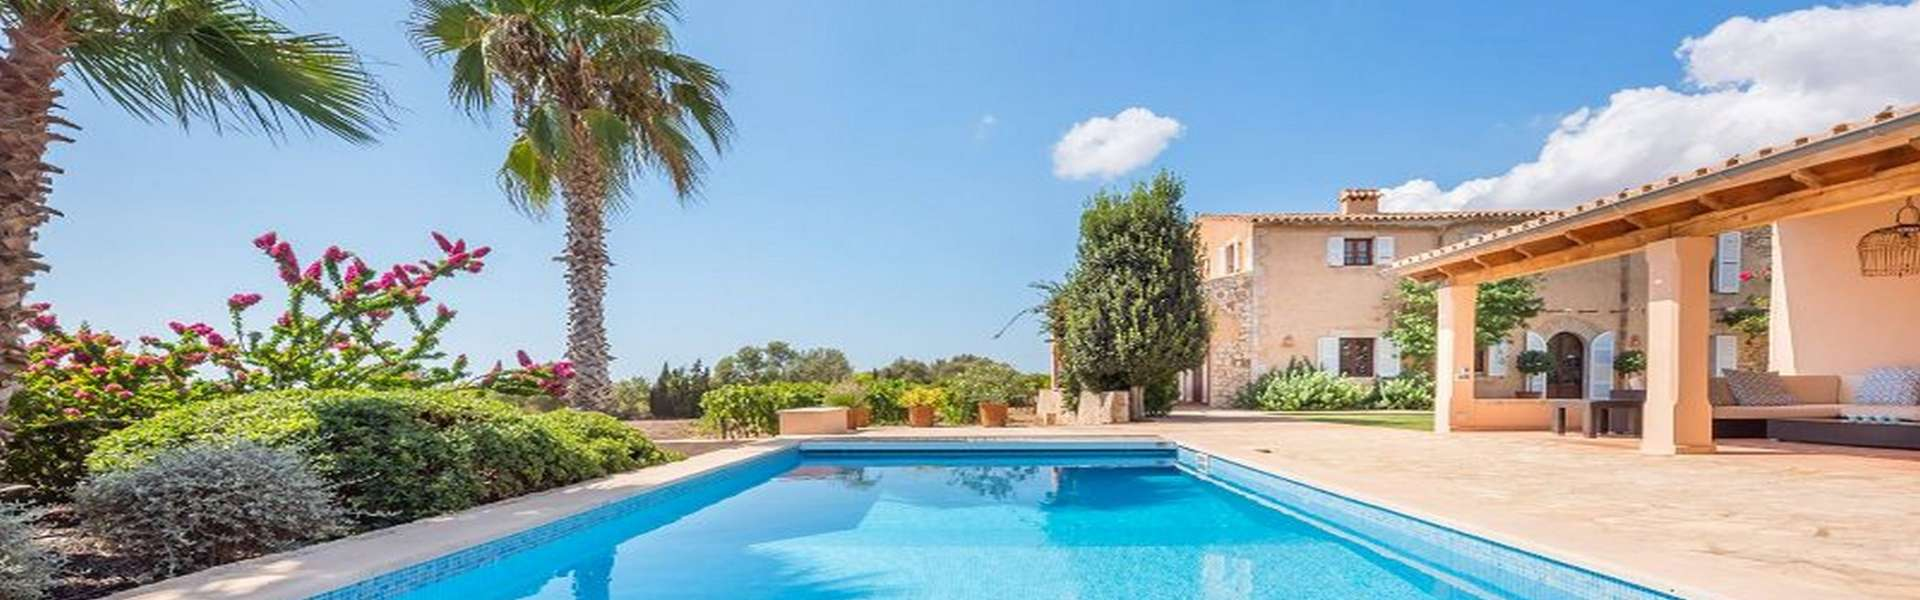 Alqueria Blanca - Beautiful country house with sea views for sale